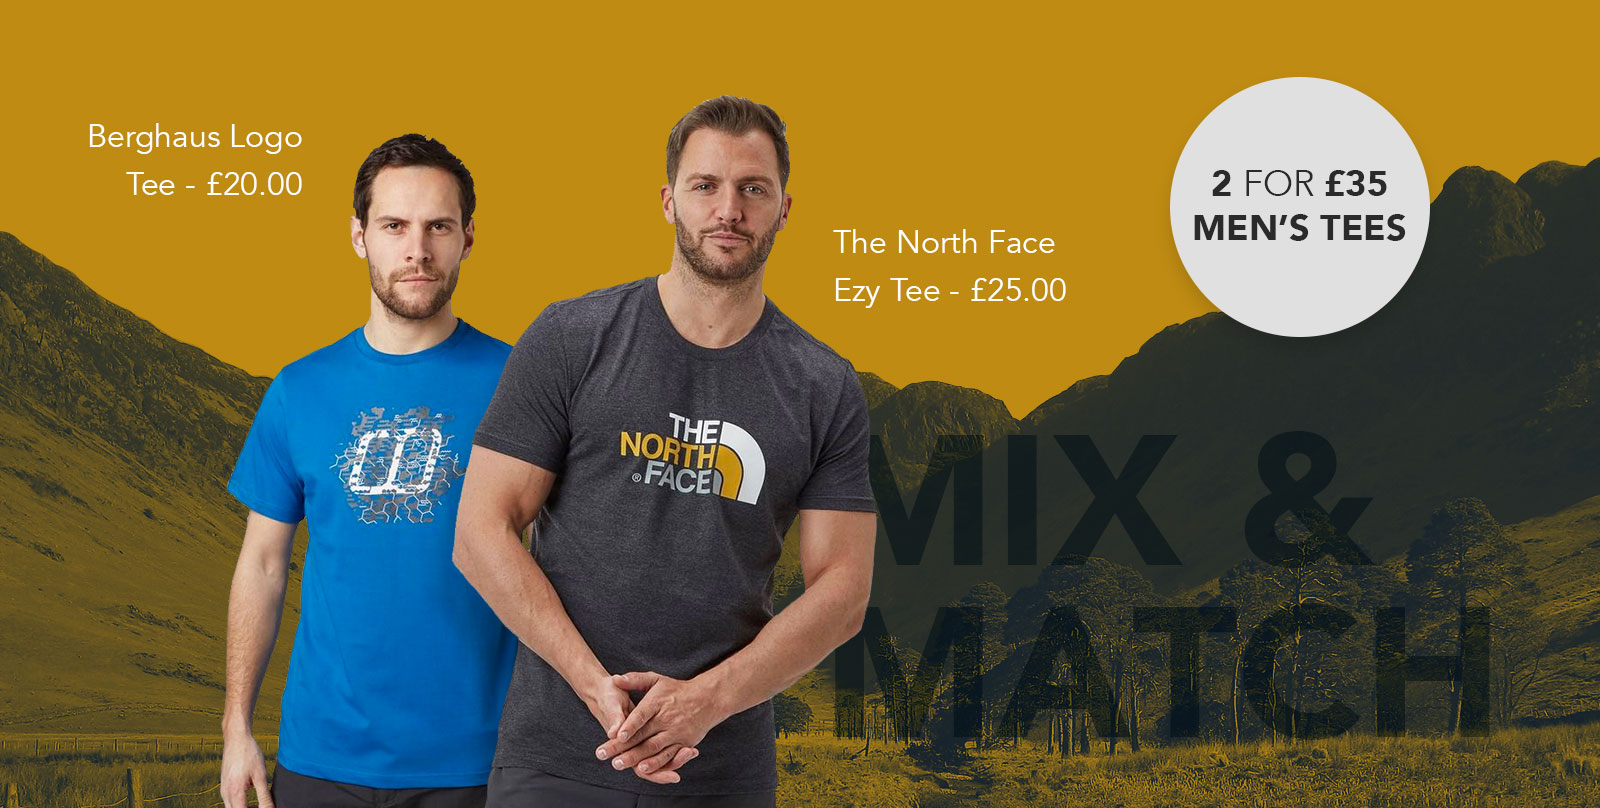 Men's 2 for £35 T-shirts